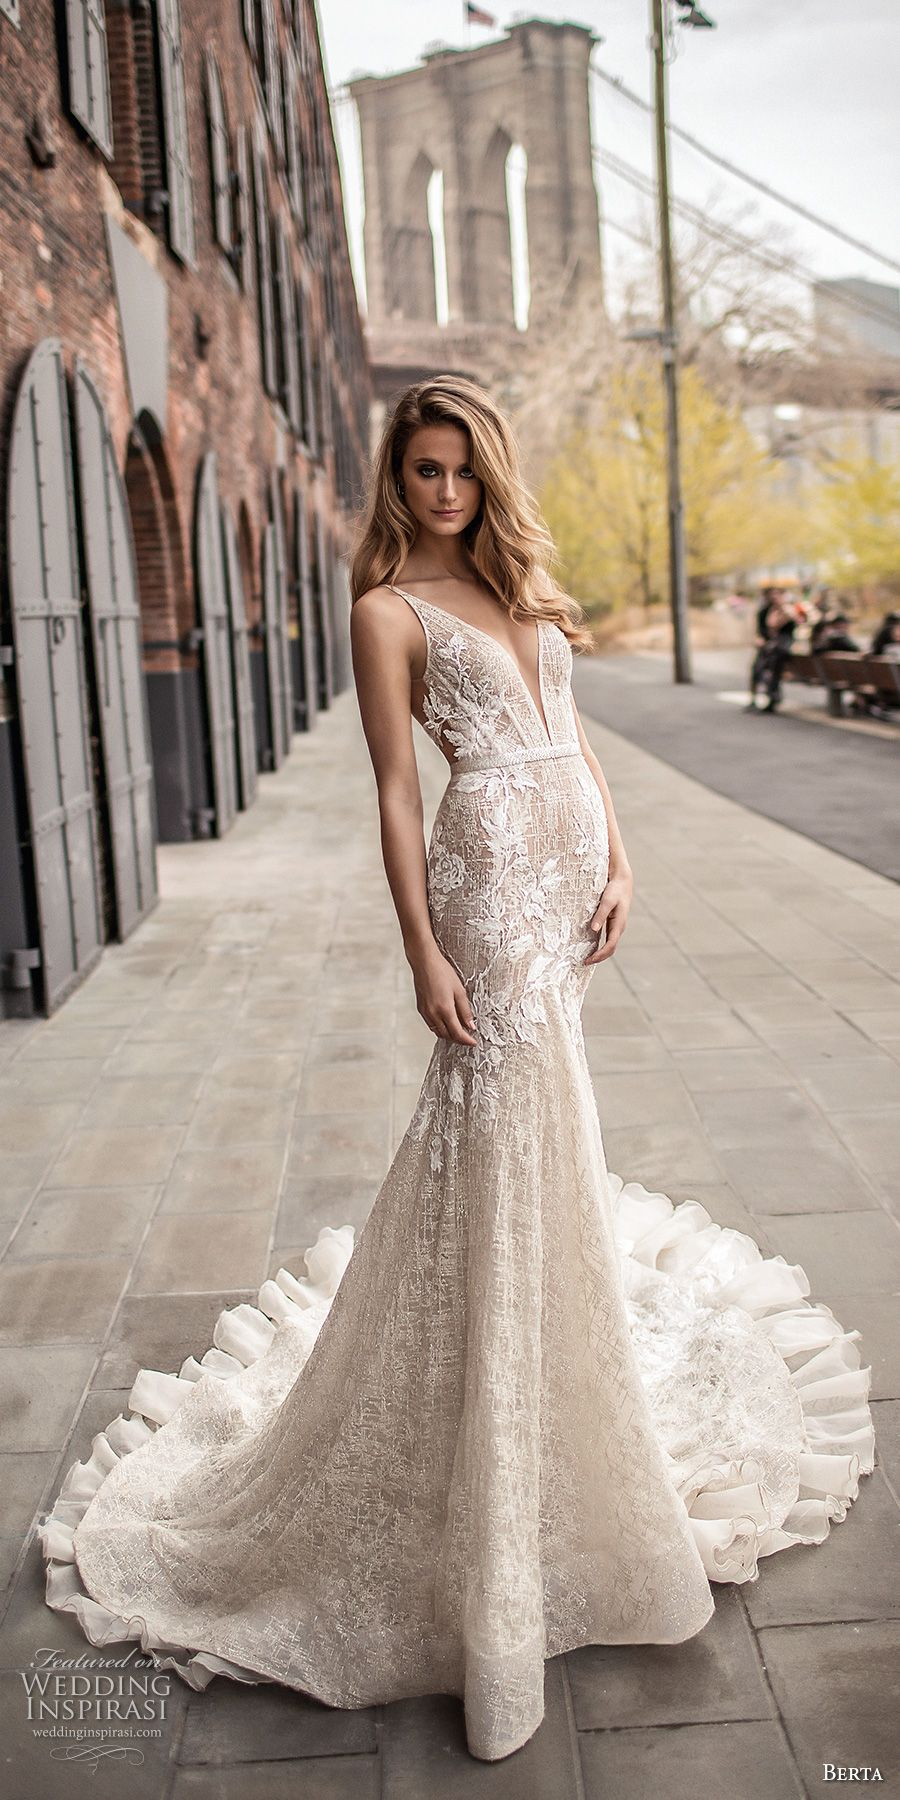 Berta spring bridal sleeveless deep plunging v neckline full